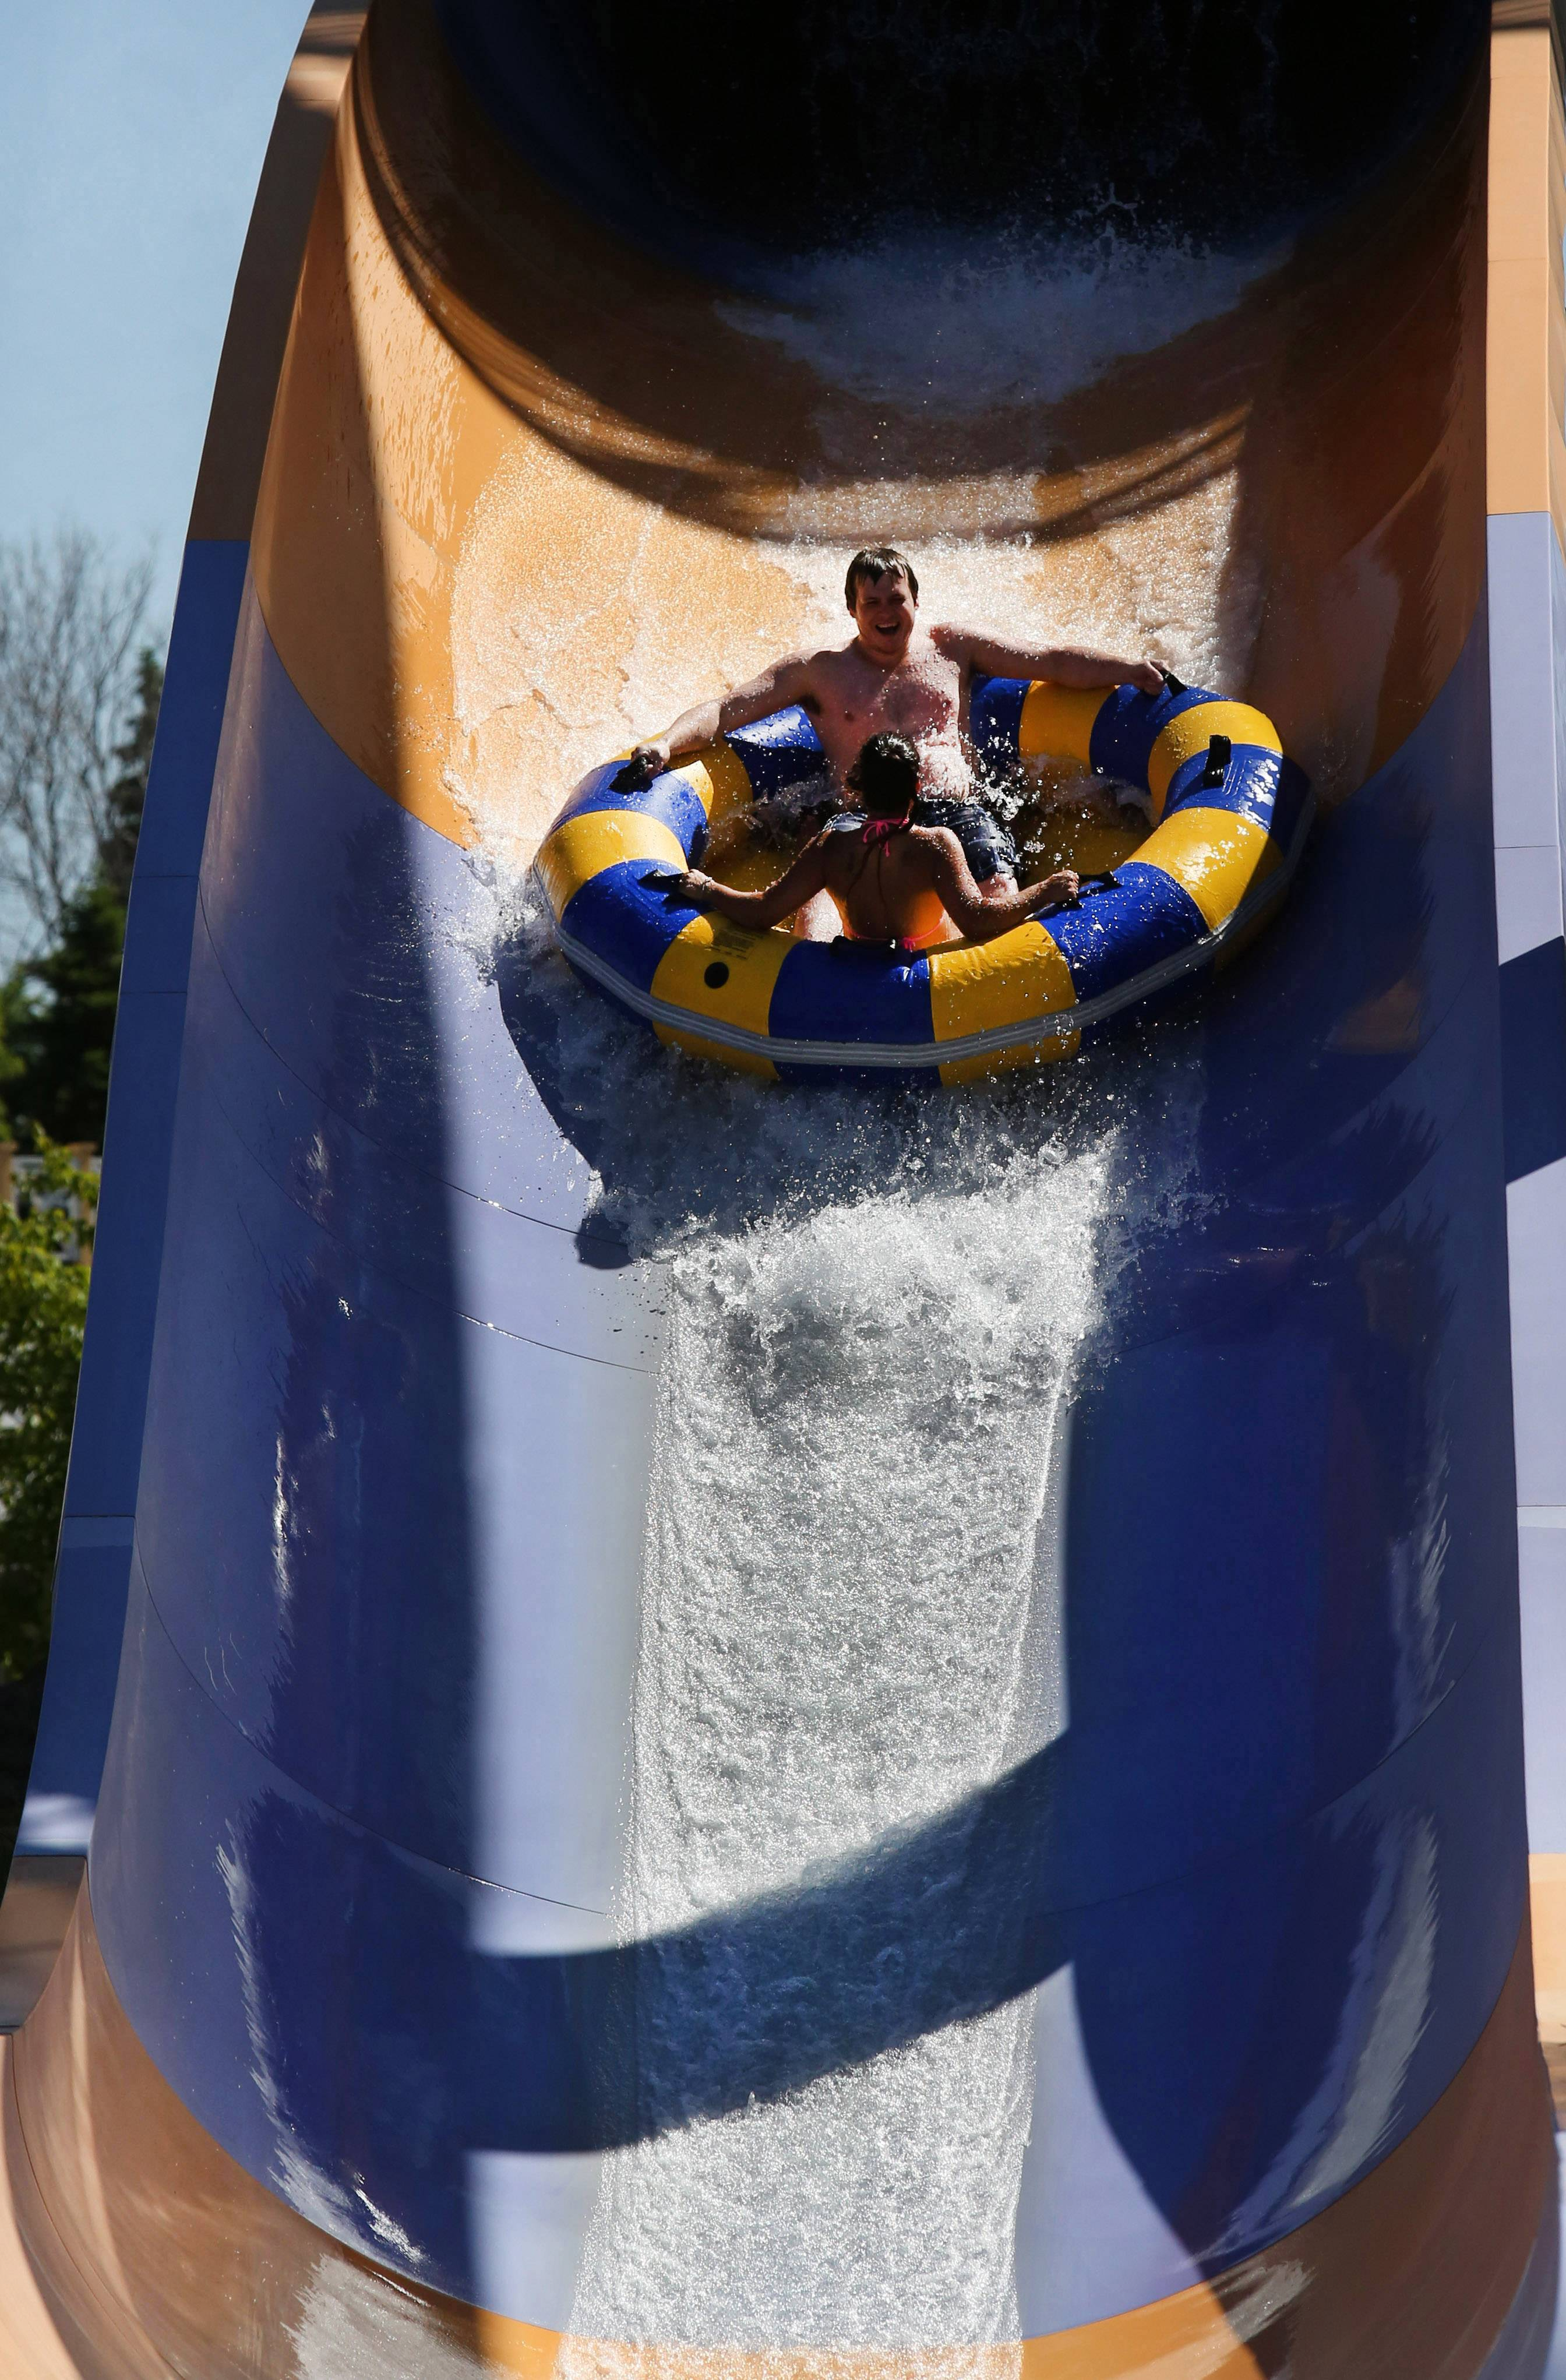 Thrill-seekers experience the final drop of the Bahama Mama extreme rafting ride at Hurricane Harbor.